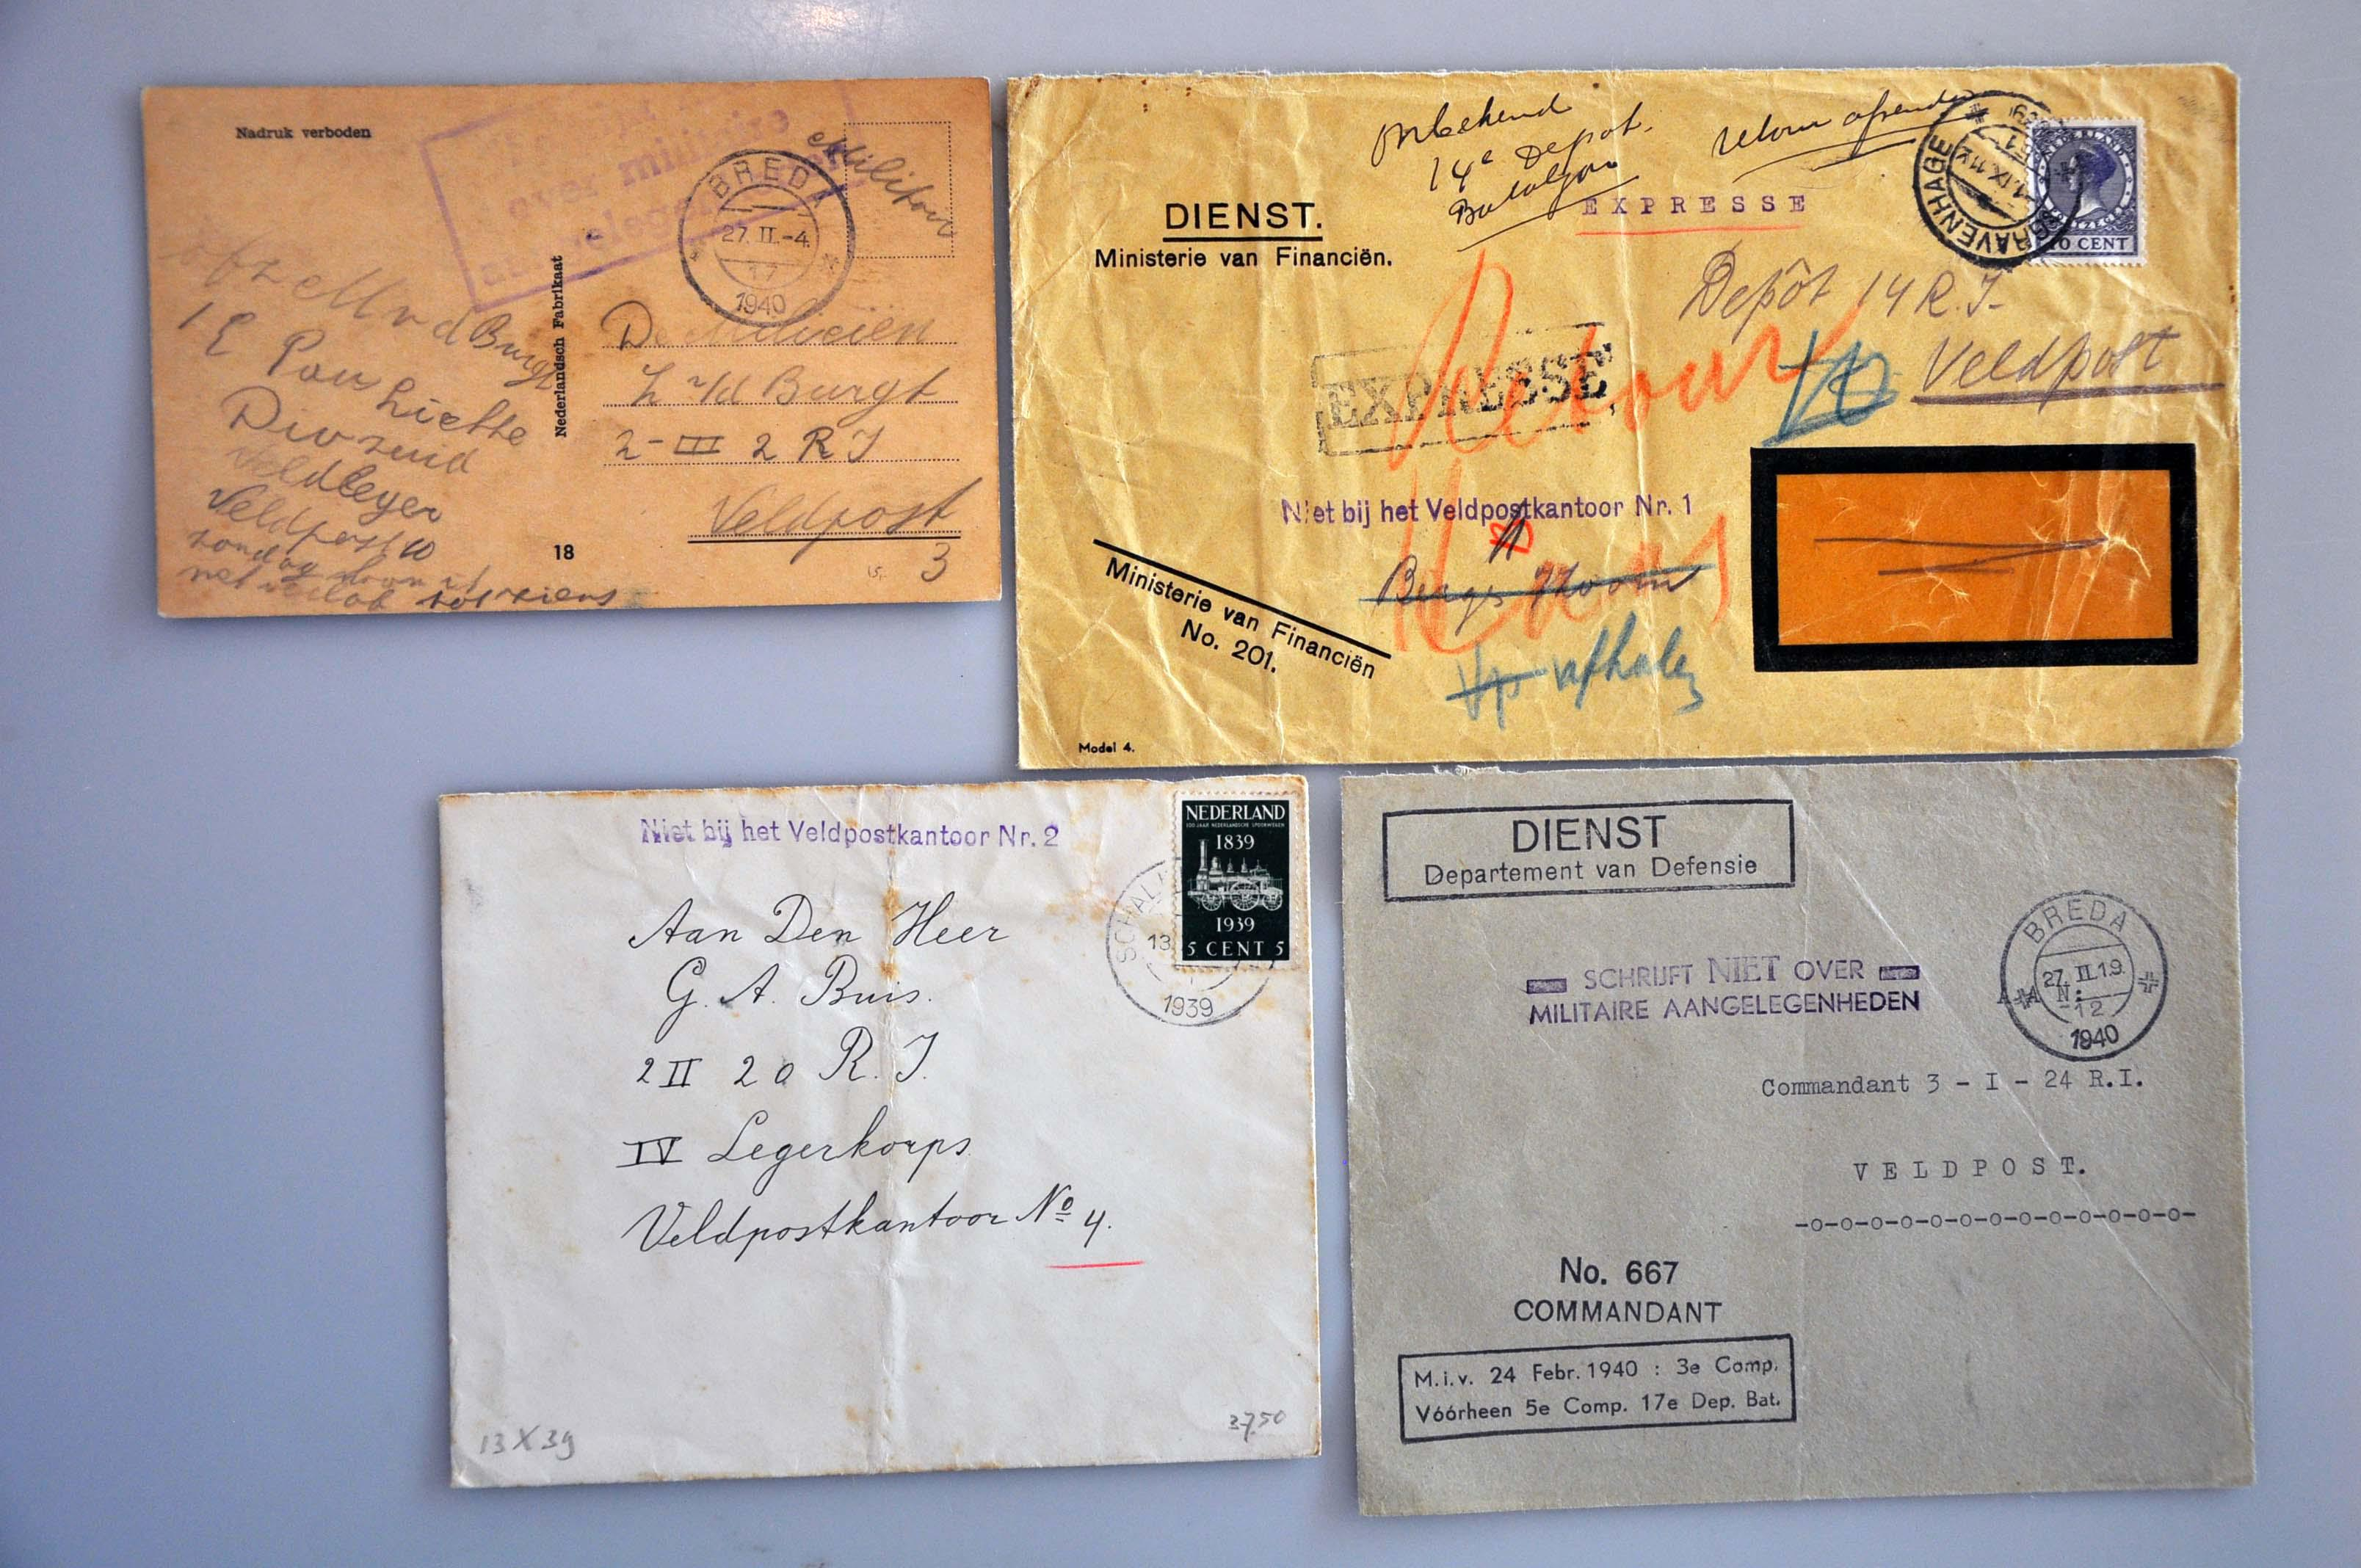 Lot 2389 - Netherlands and former colonies Netherlands -  Corinphila Veilingen Auction 245-246 Day 3 - Netherlands and former colonies - Single lots, Collections and lots, Boxes and literature